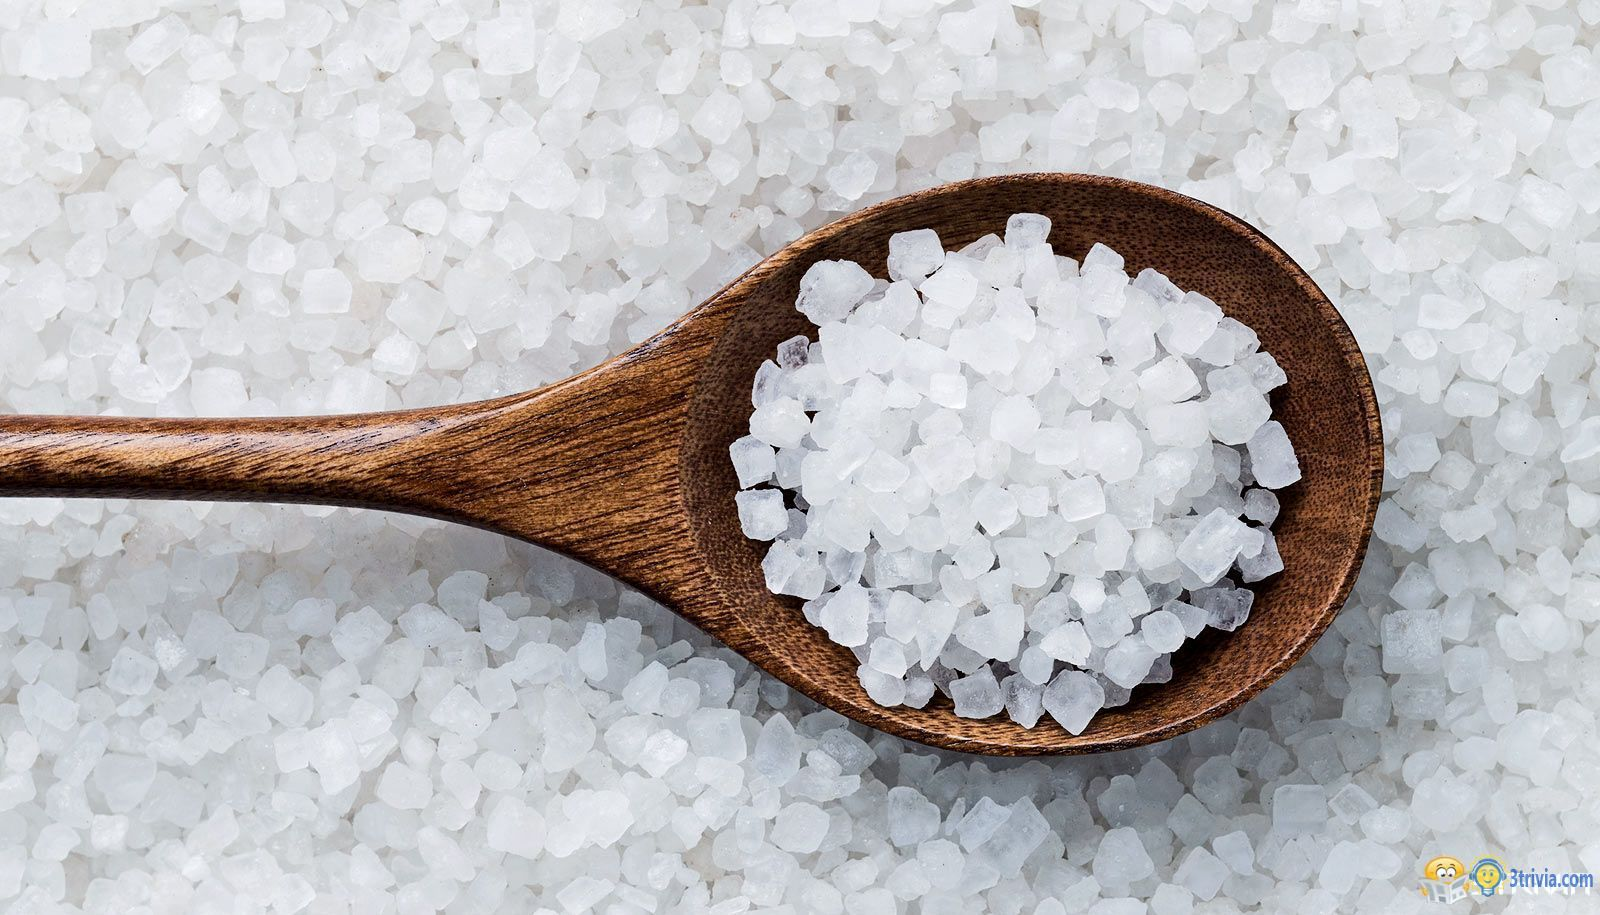 Salt trivia:Why is salt antibacterial?